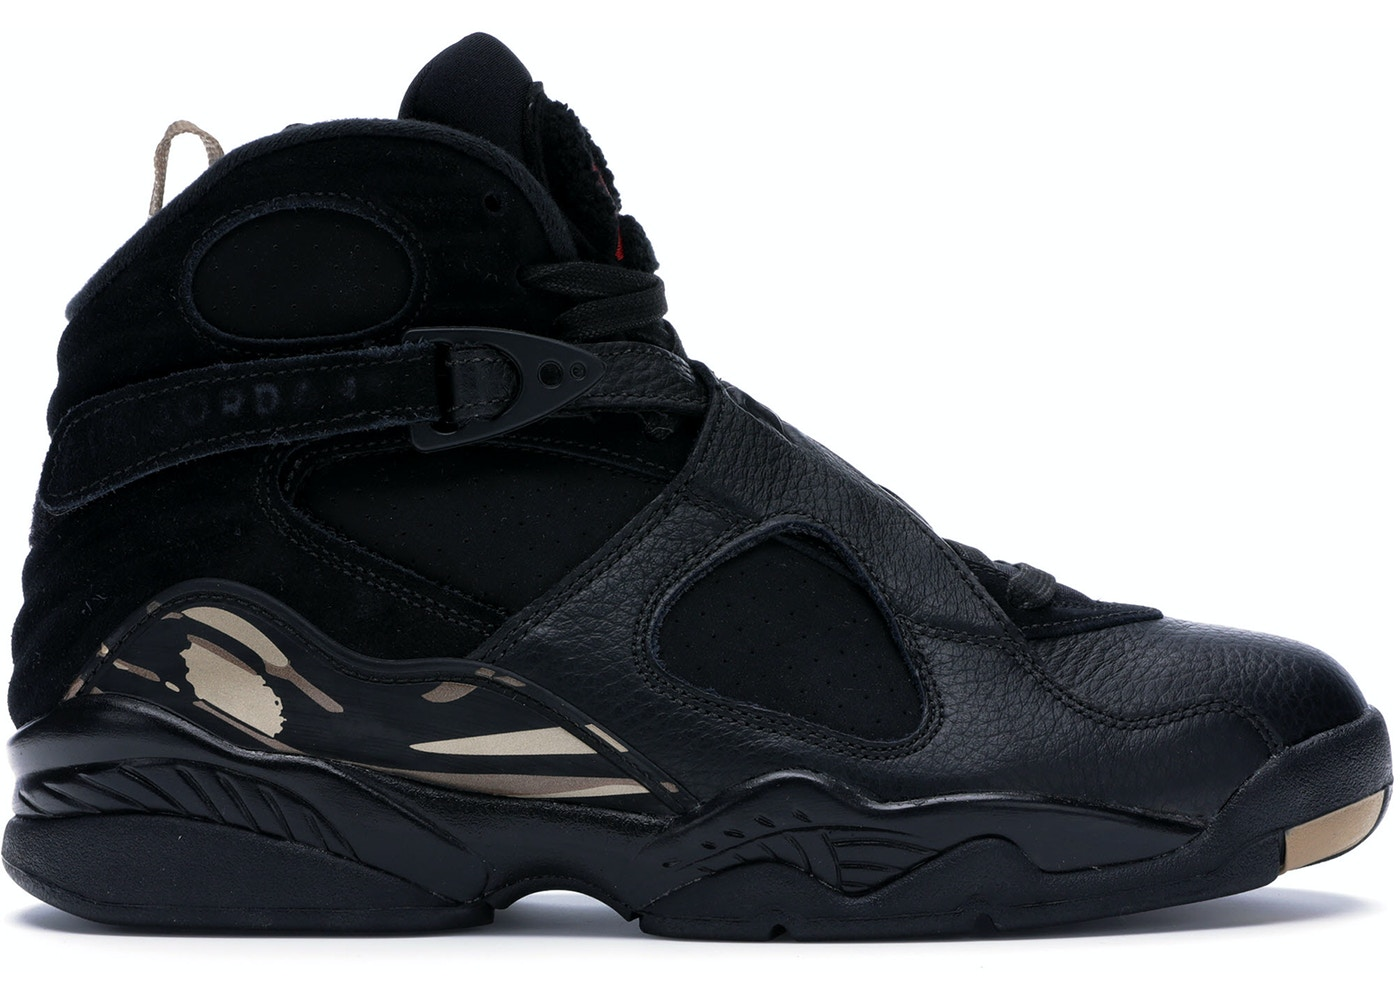 timeless design b9e4a 0cddb Jordan 8 Retro OVO Black